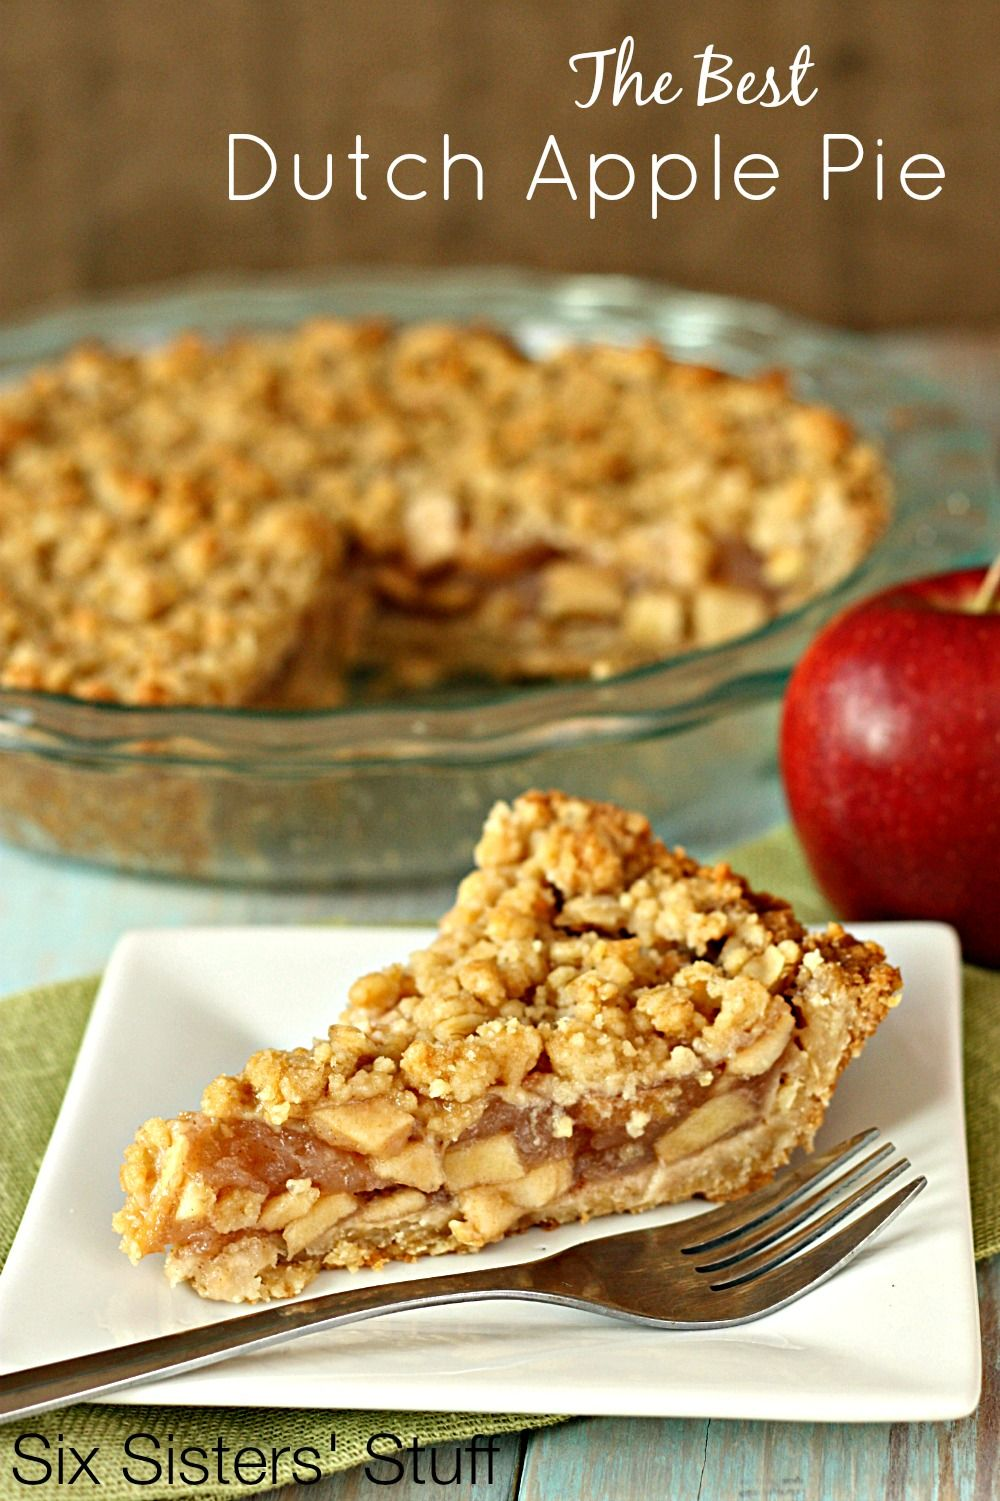 The Best Dutch Apple Pie Crumble Topping